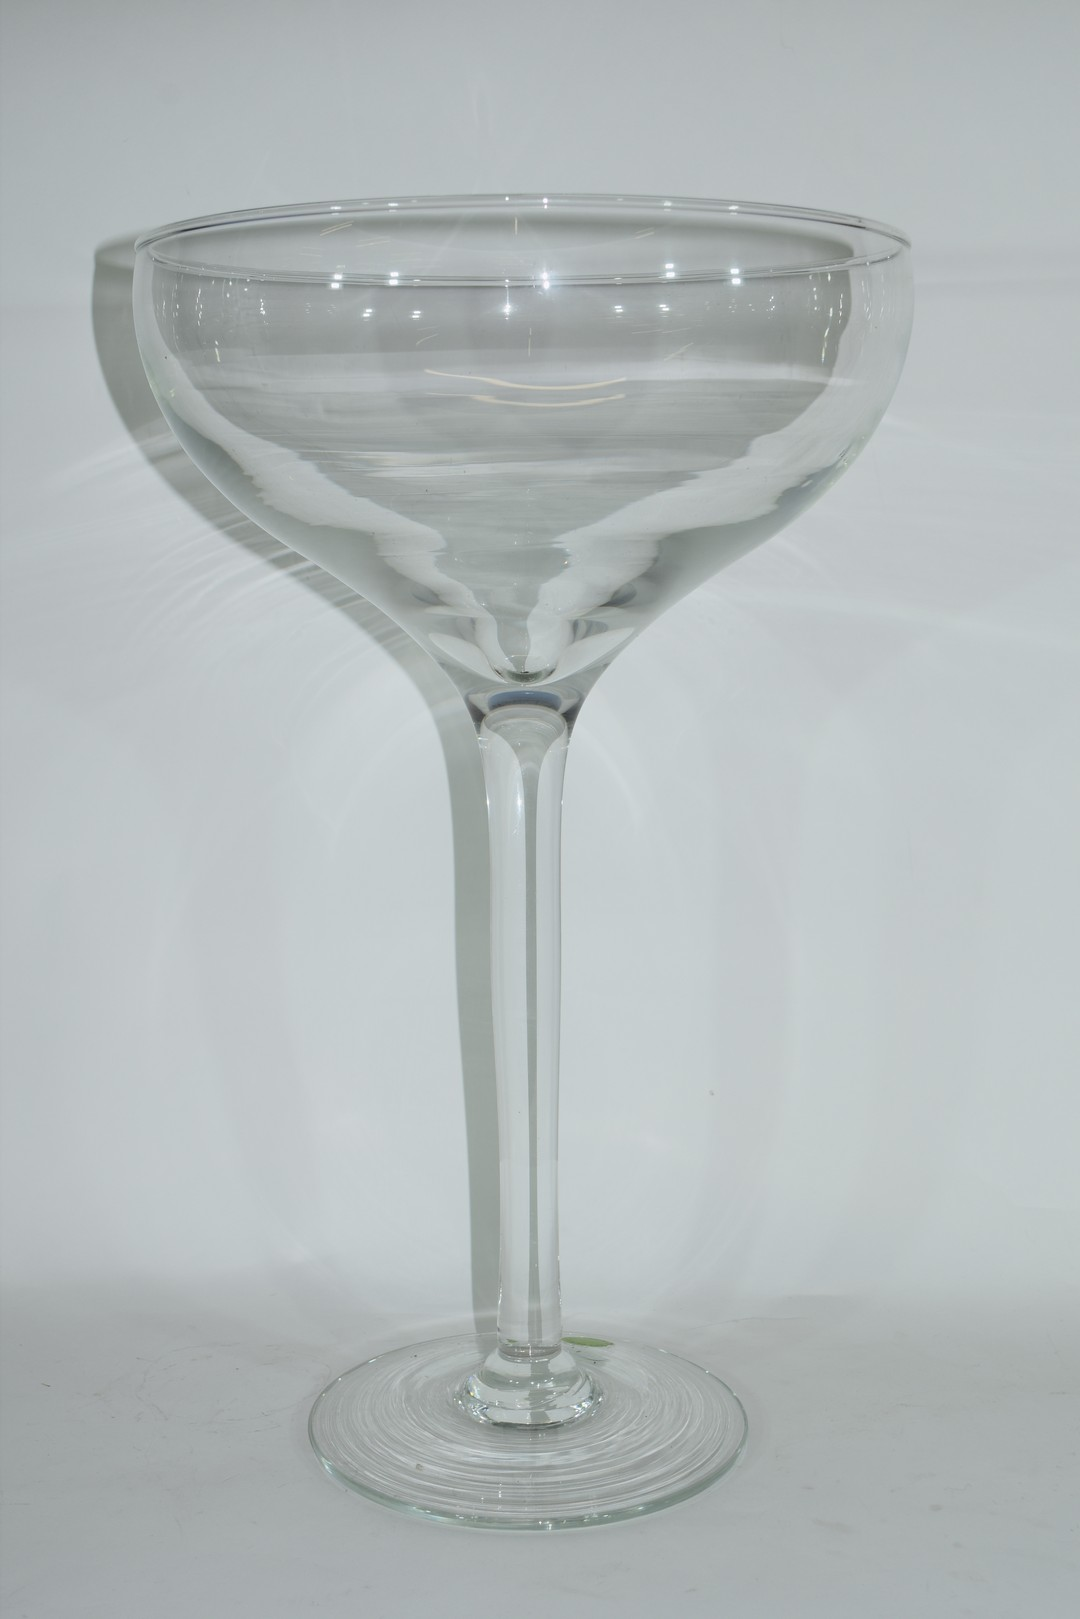 Large clear glass bowl raised on plain stem and foot